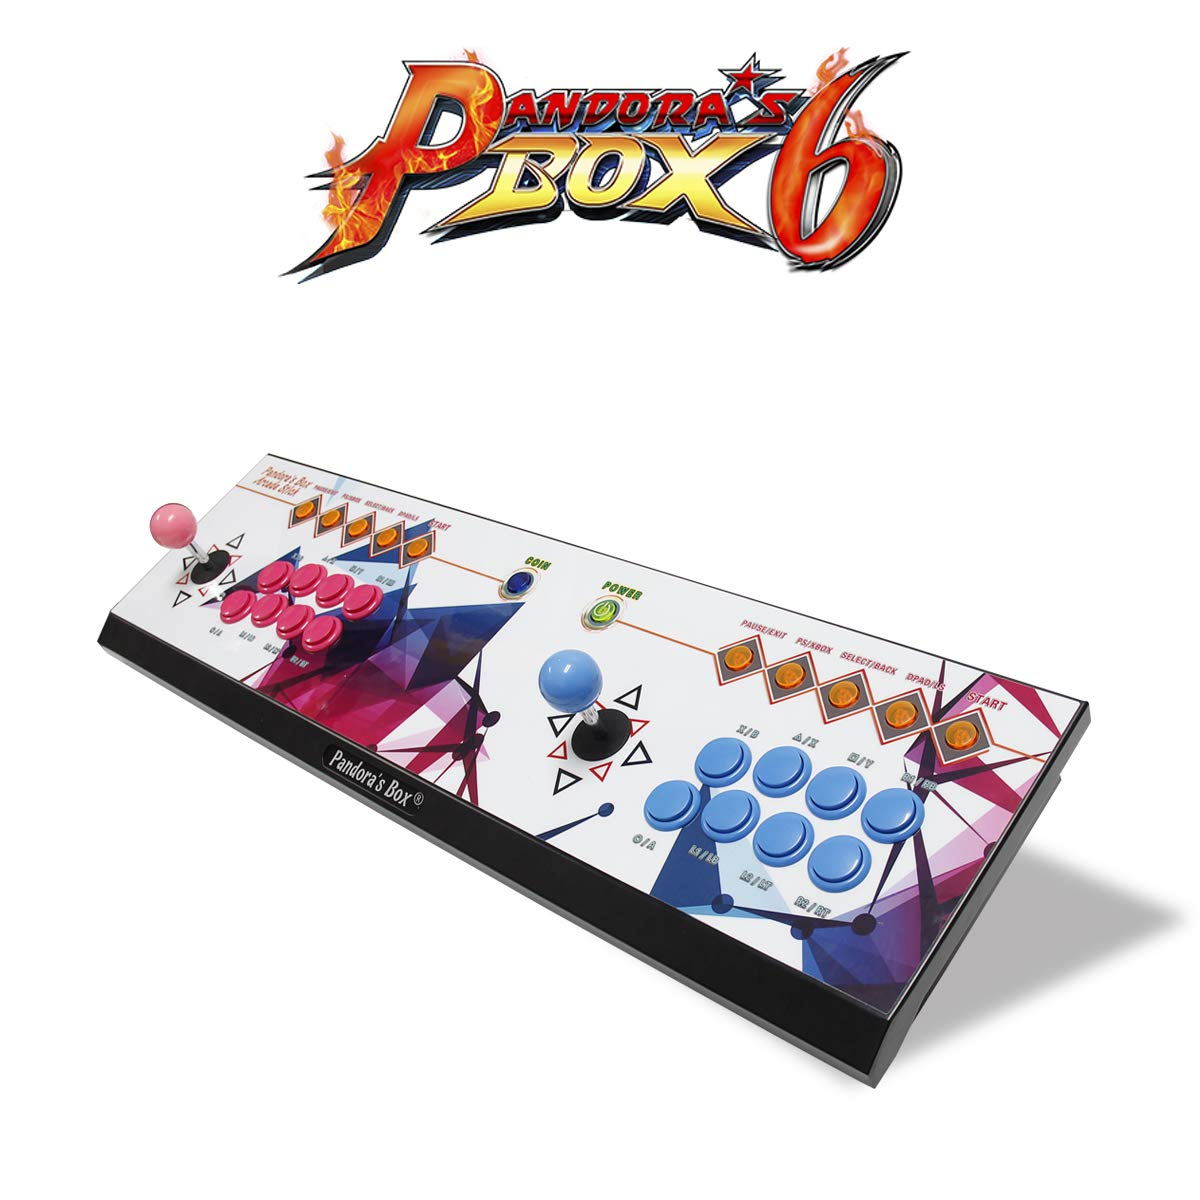 Wisamic Real Pandora's Box 6 Arcade Game Console - Add Additional Games, Support 3D Games, with Full HD, Games Classification, Upgraded CPU, Support PS3 PC TV 2 Players, No Games Included (8 Buttons) by Wisamic (Image #5)